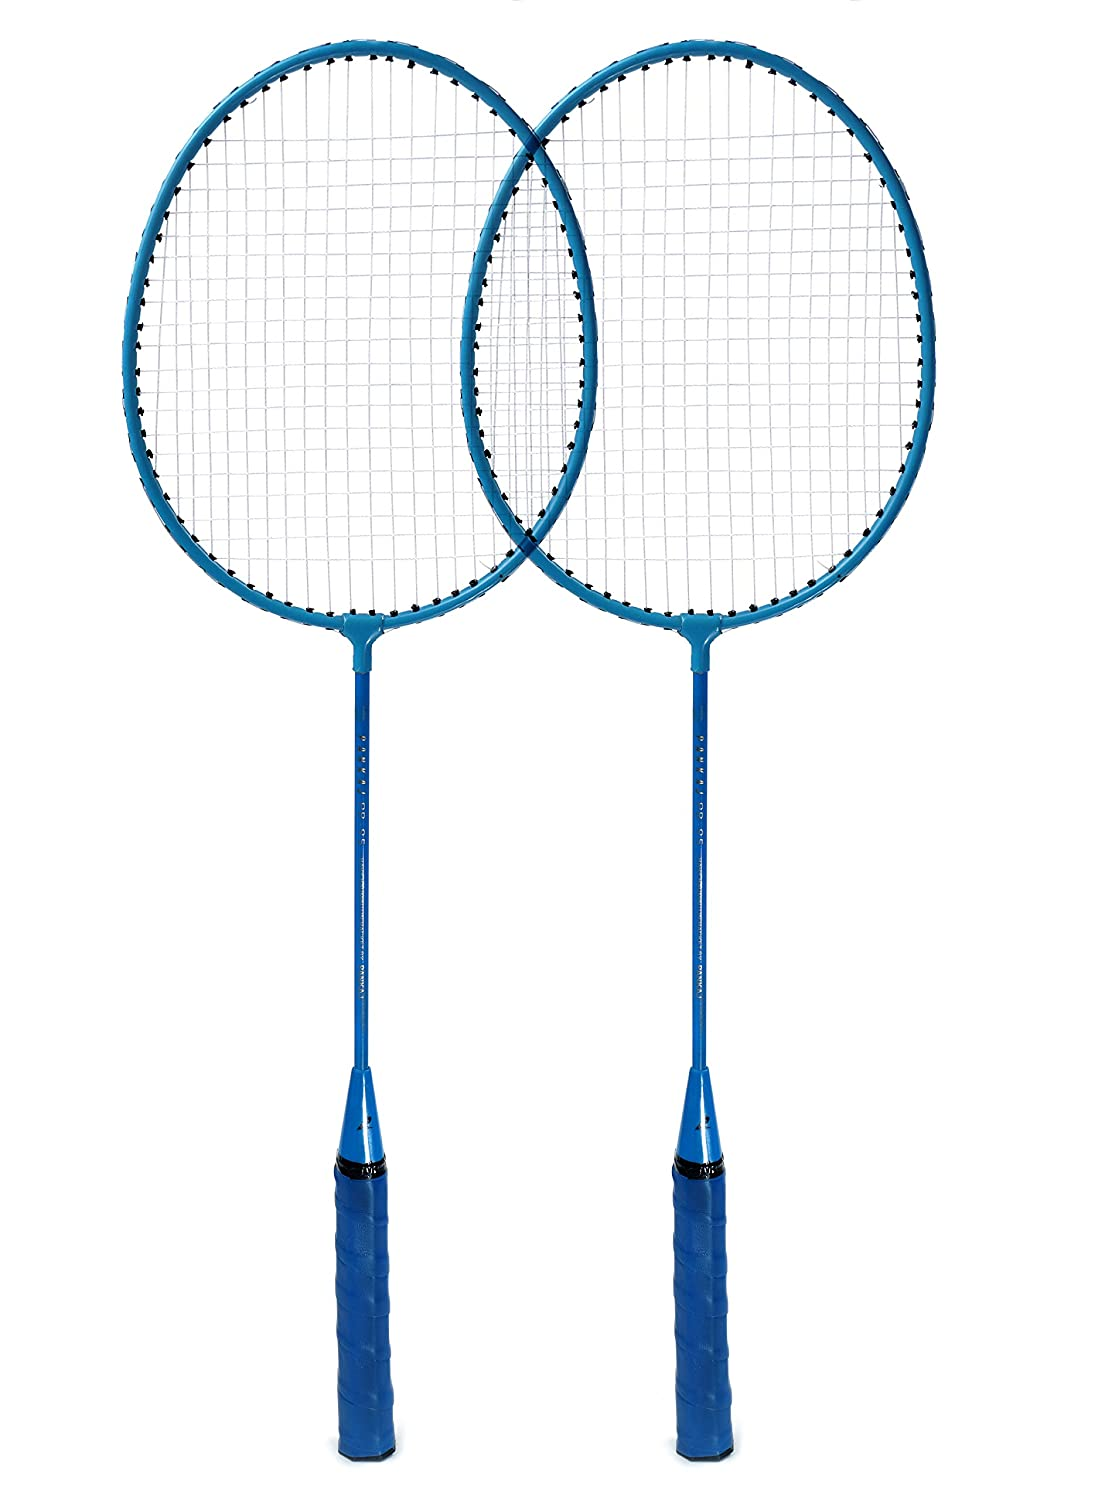 Badminton Racket - PB 95 - Pack for 2 (Blue)